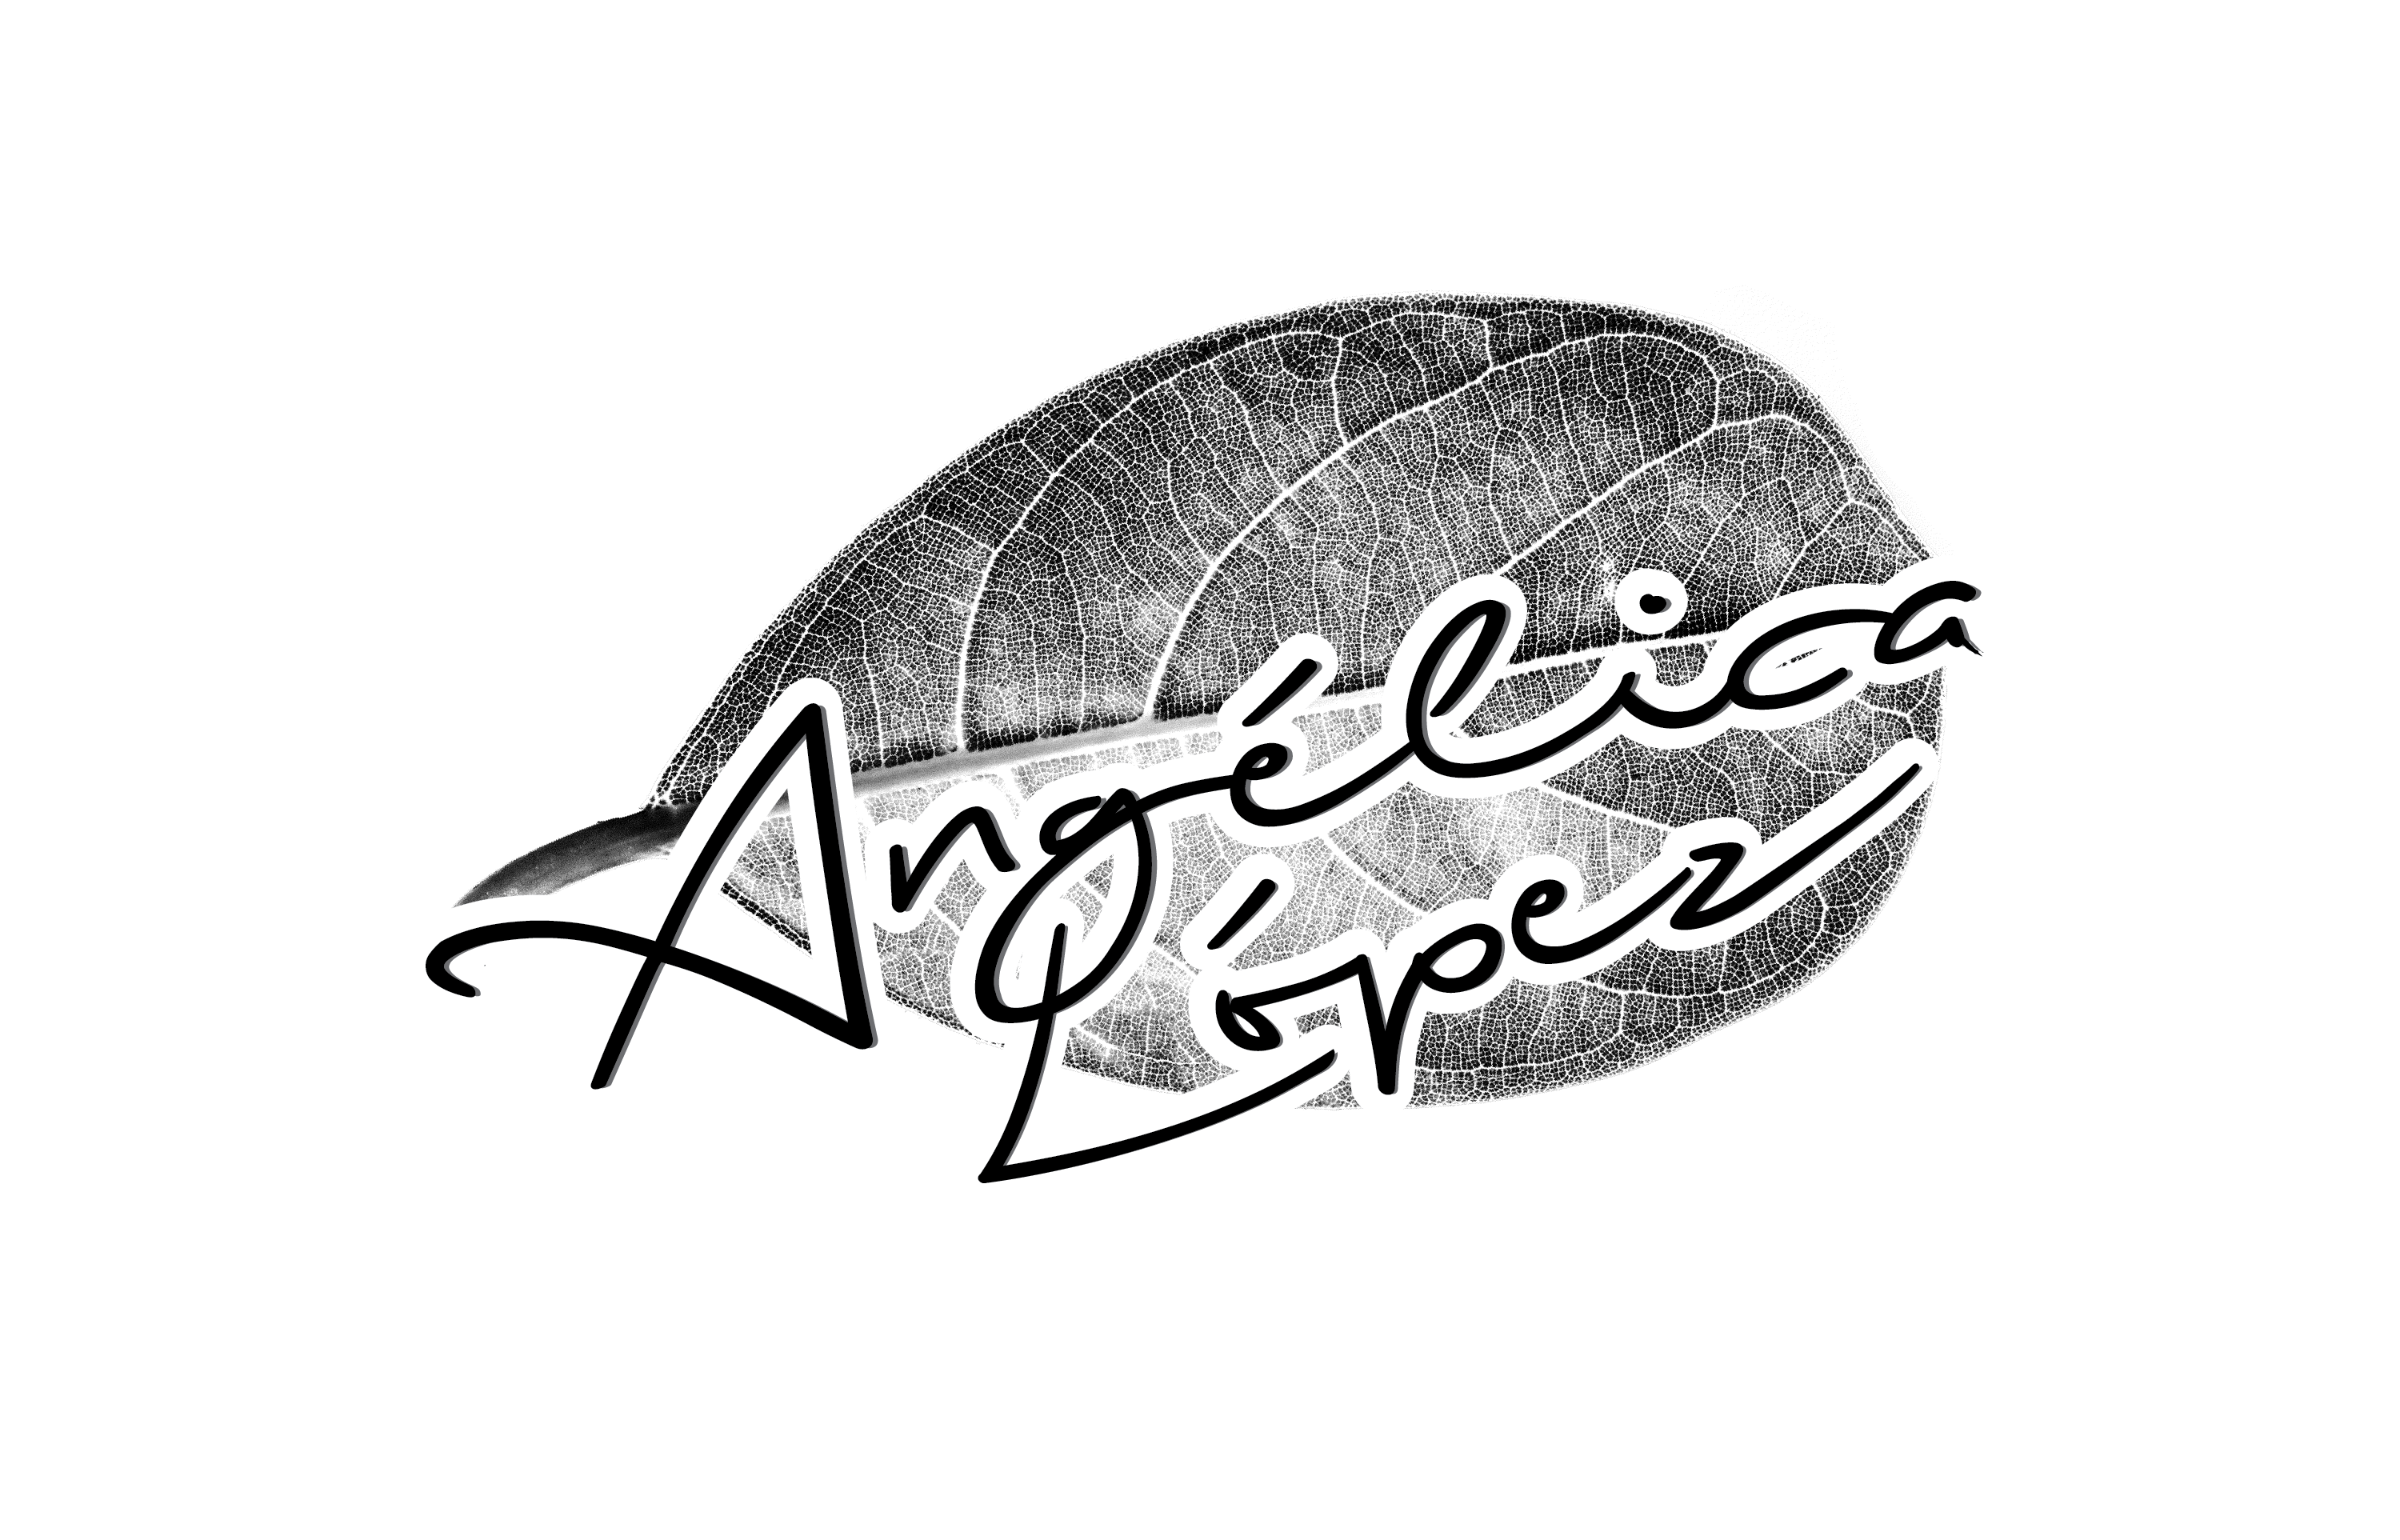 Angelica_Lopez_LOGO 1.png